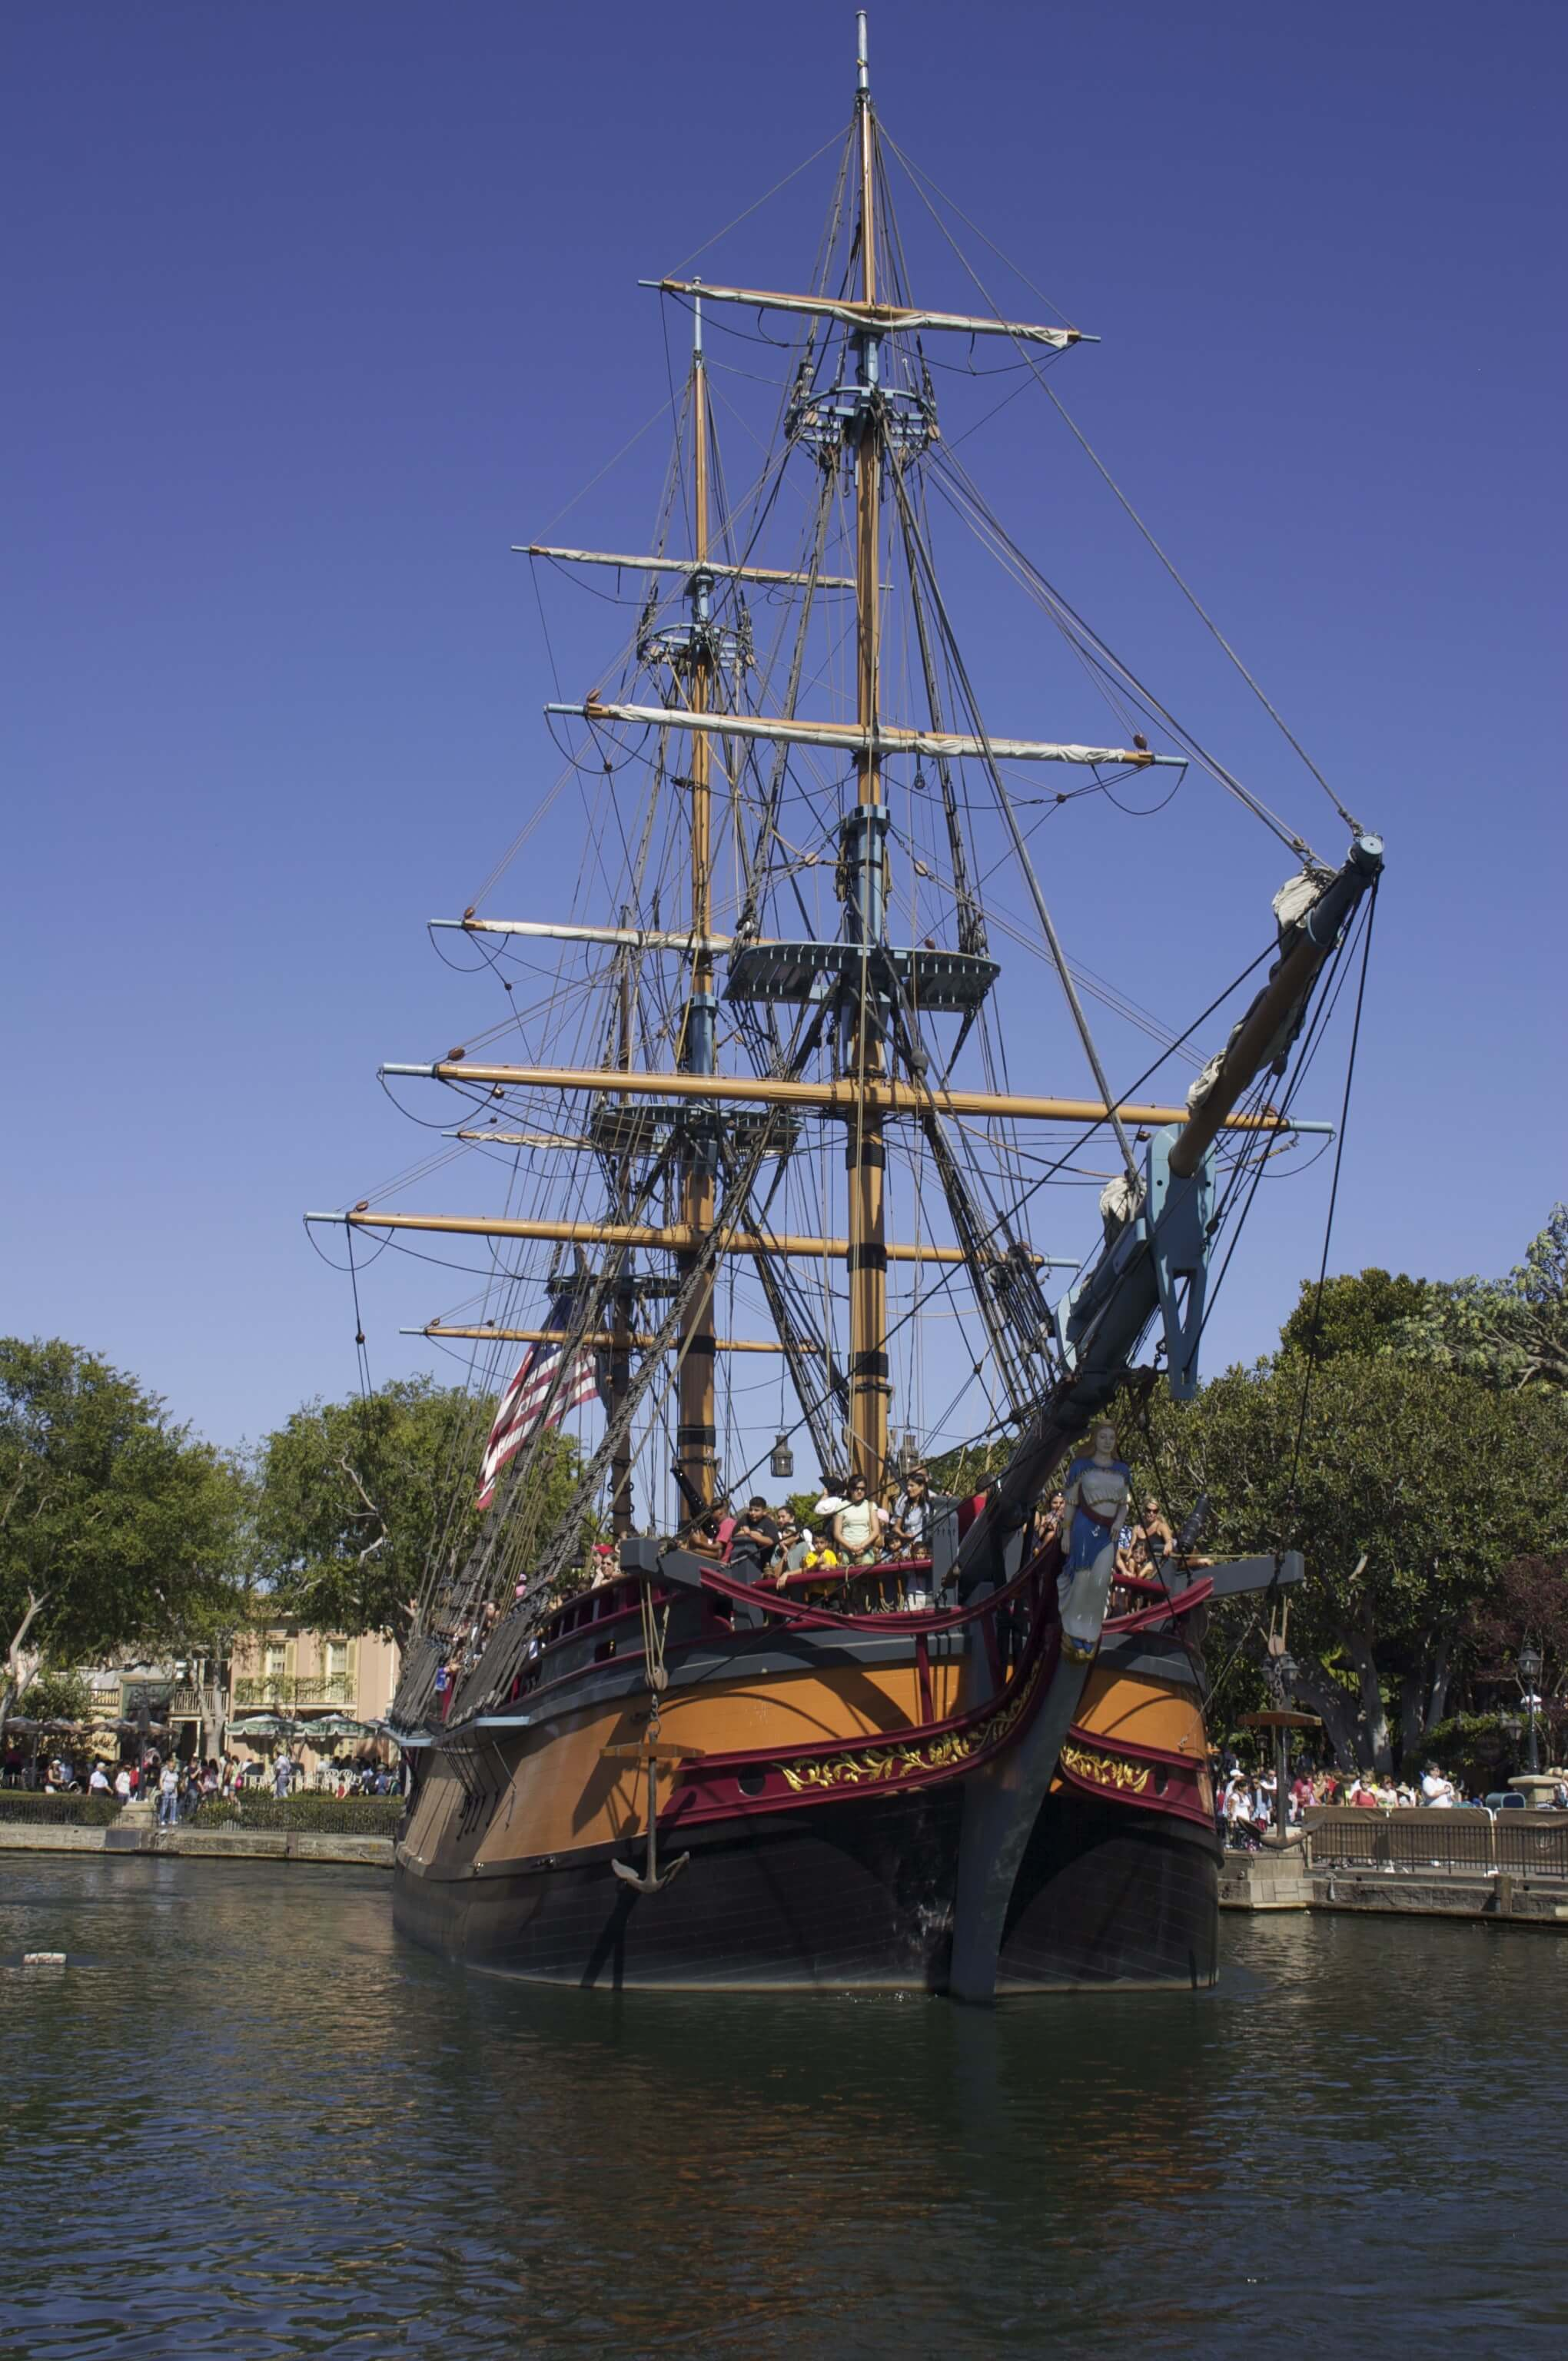 The Sailing Ship Columbia Things to do in disneyland